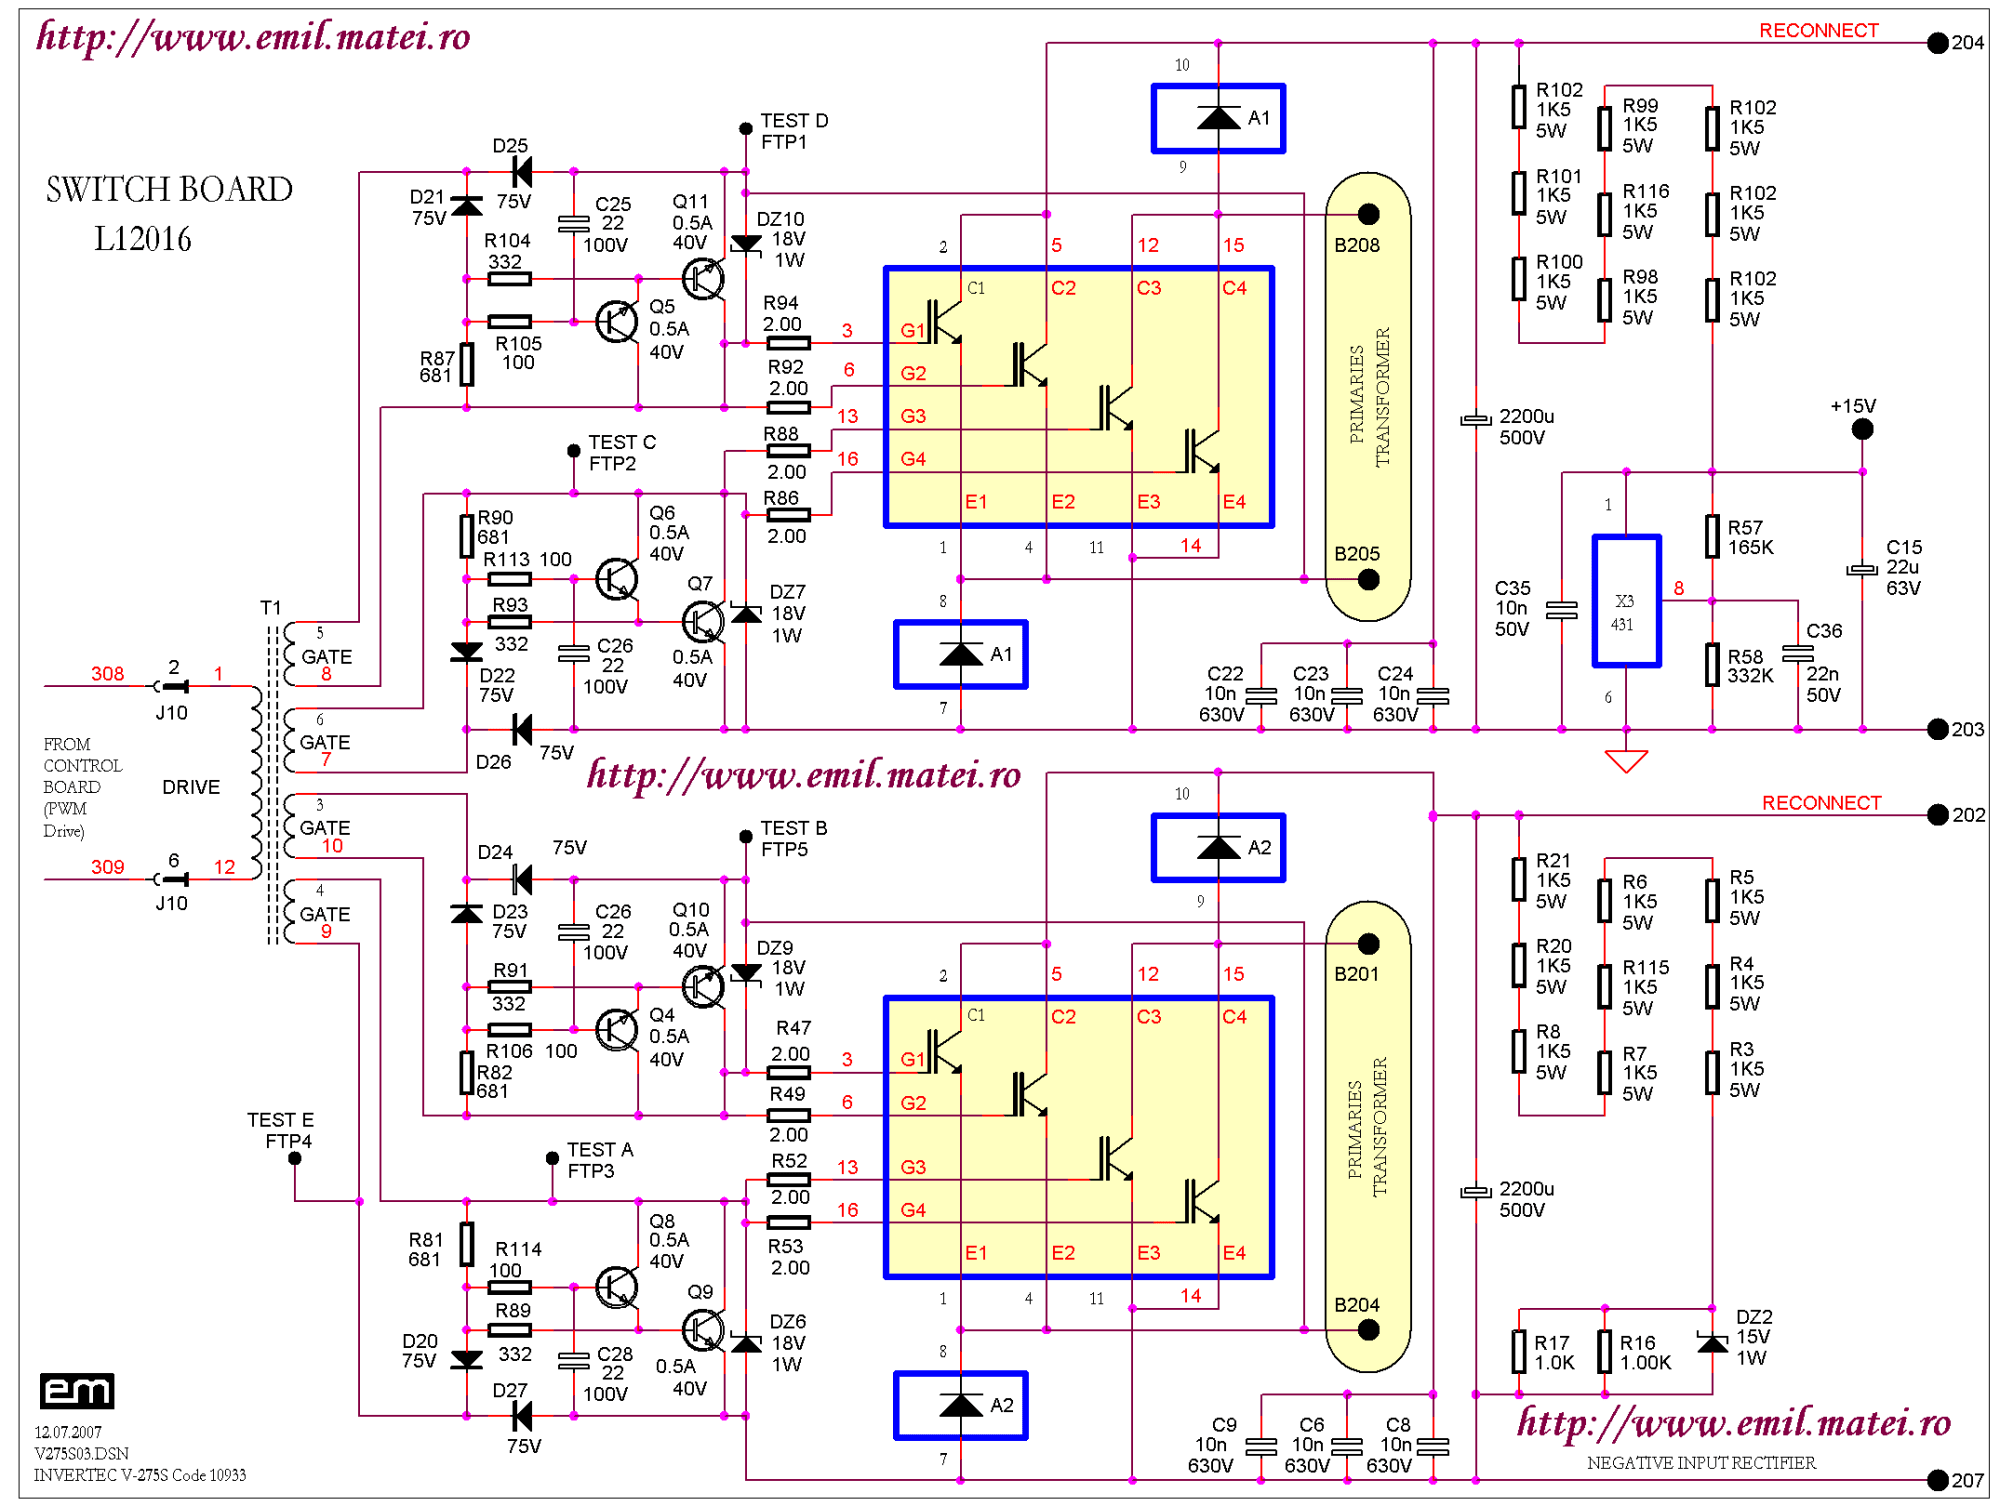 hight resolution of  igbt switch board schematic diagram of welding inverter lincoln invertec v275 s code 10993